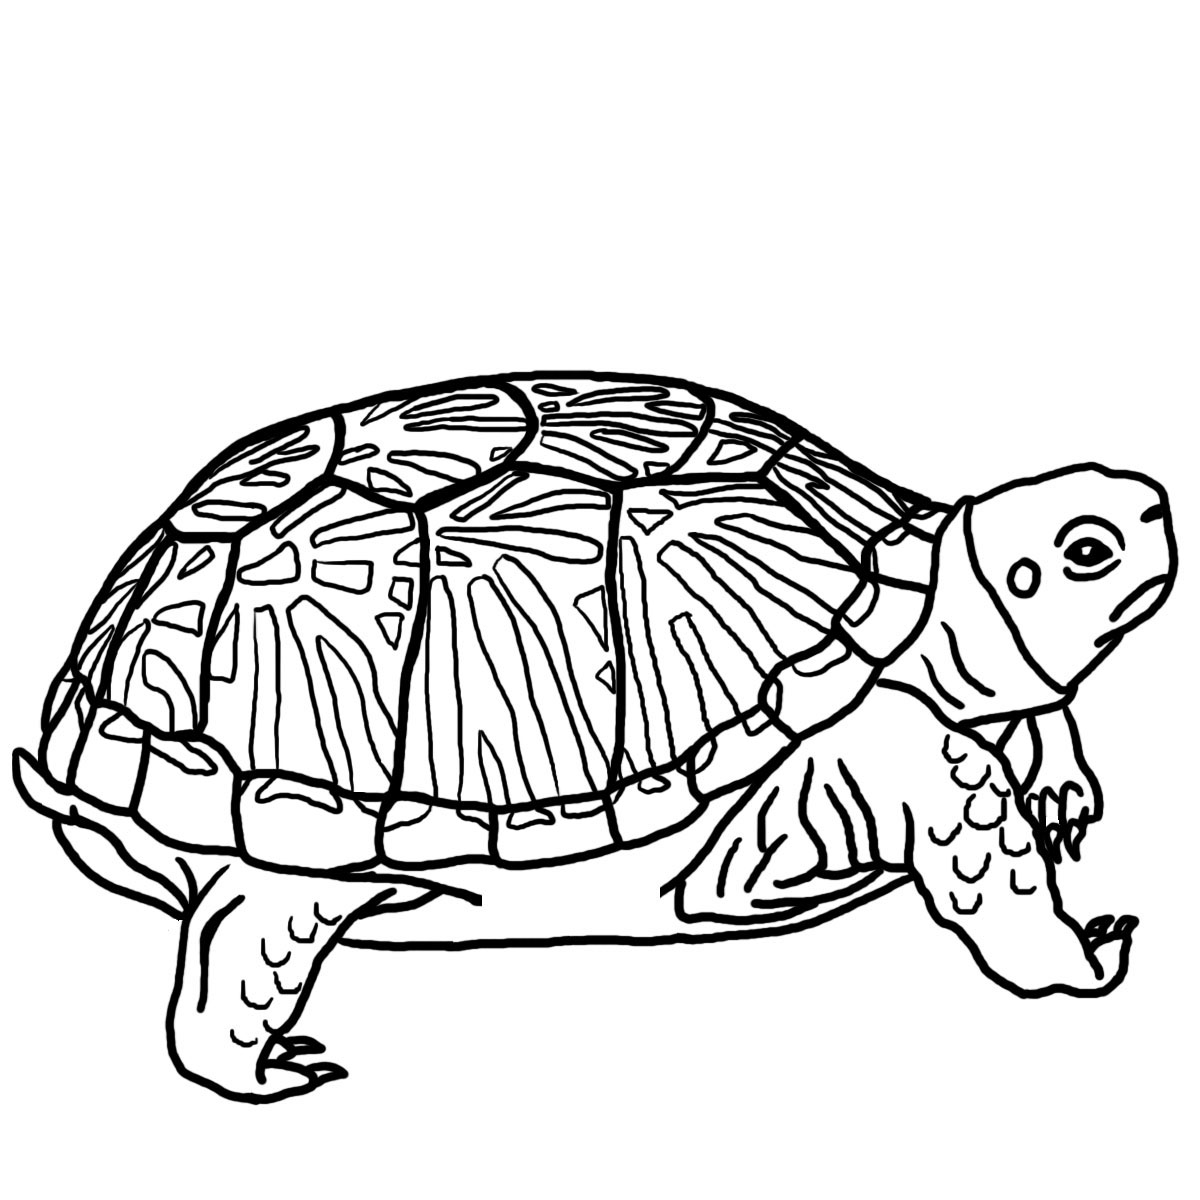 Sea Turtle Clipart Black And White | Free download best Sea Turtle ...